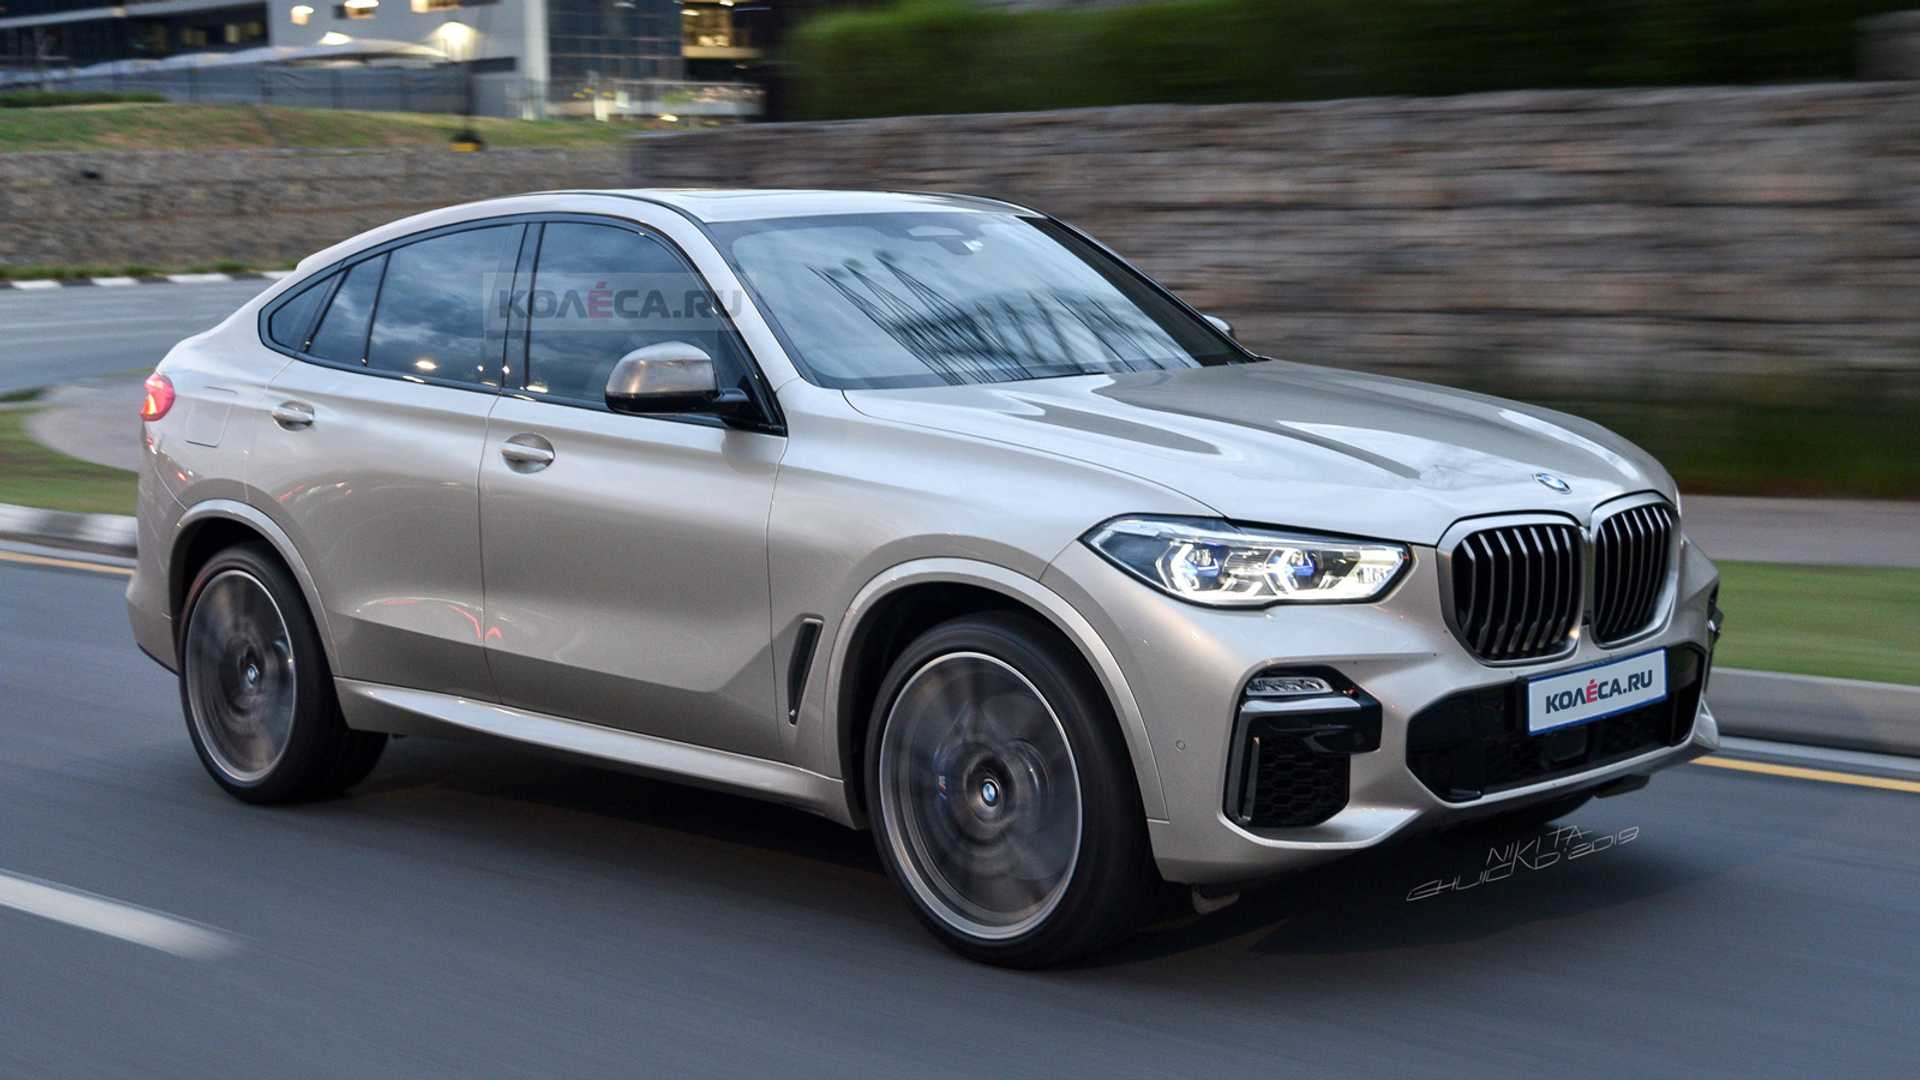 Changes in the new generation of BMW X6 != null? Model.Item1.TitleEn.TitleCorrector():Model.Item1.Title.TitleCorrector()